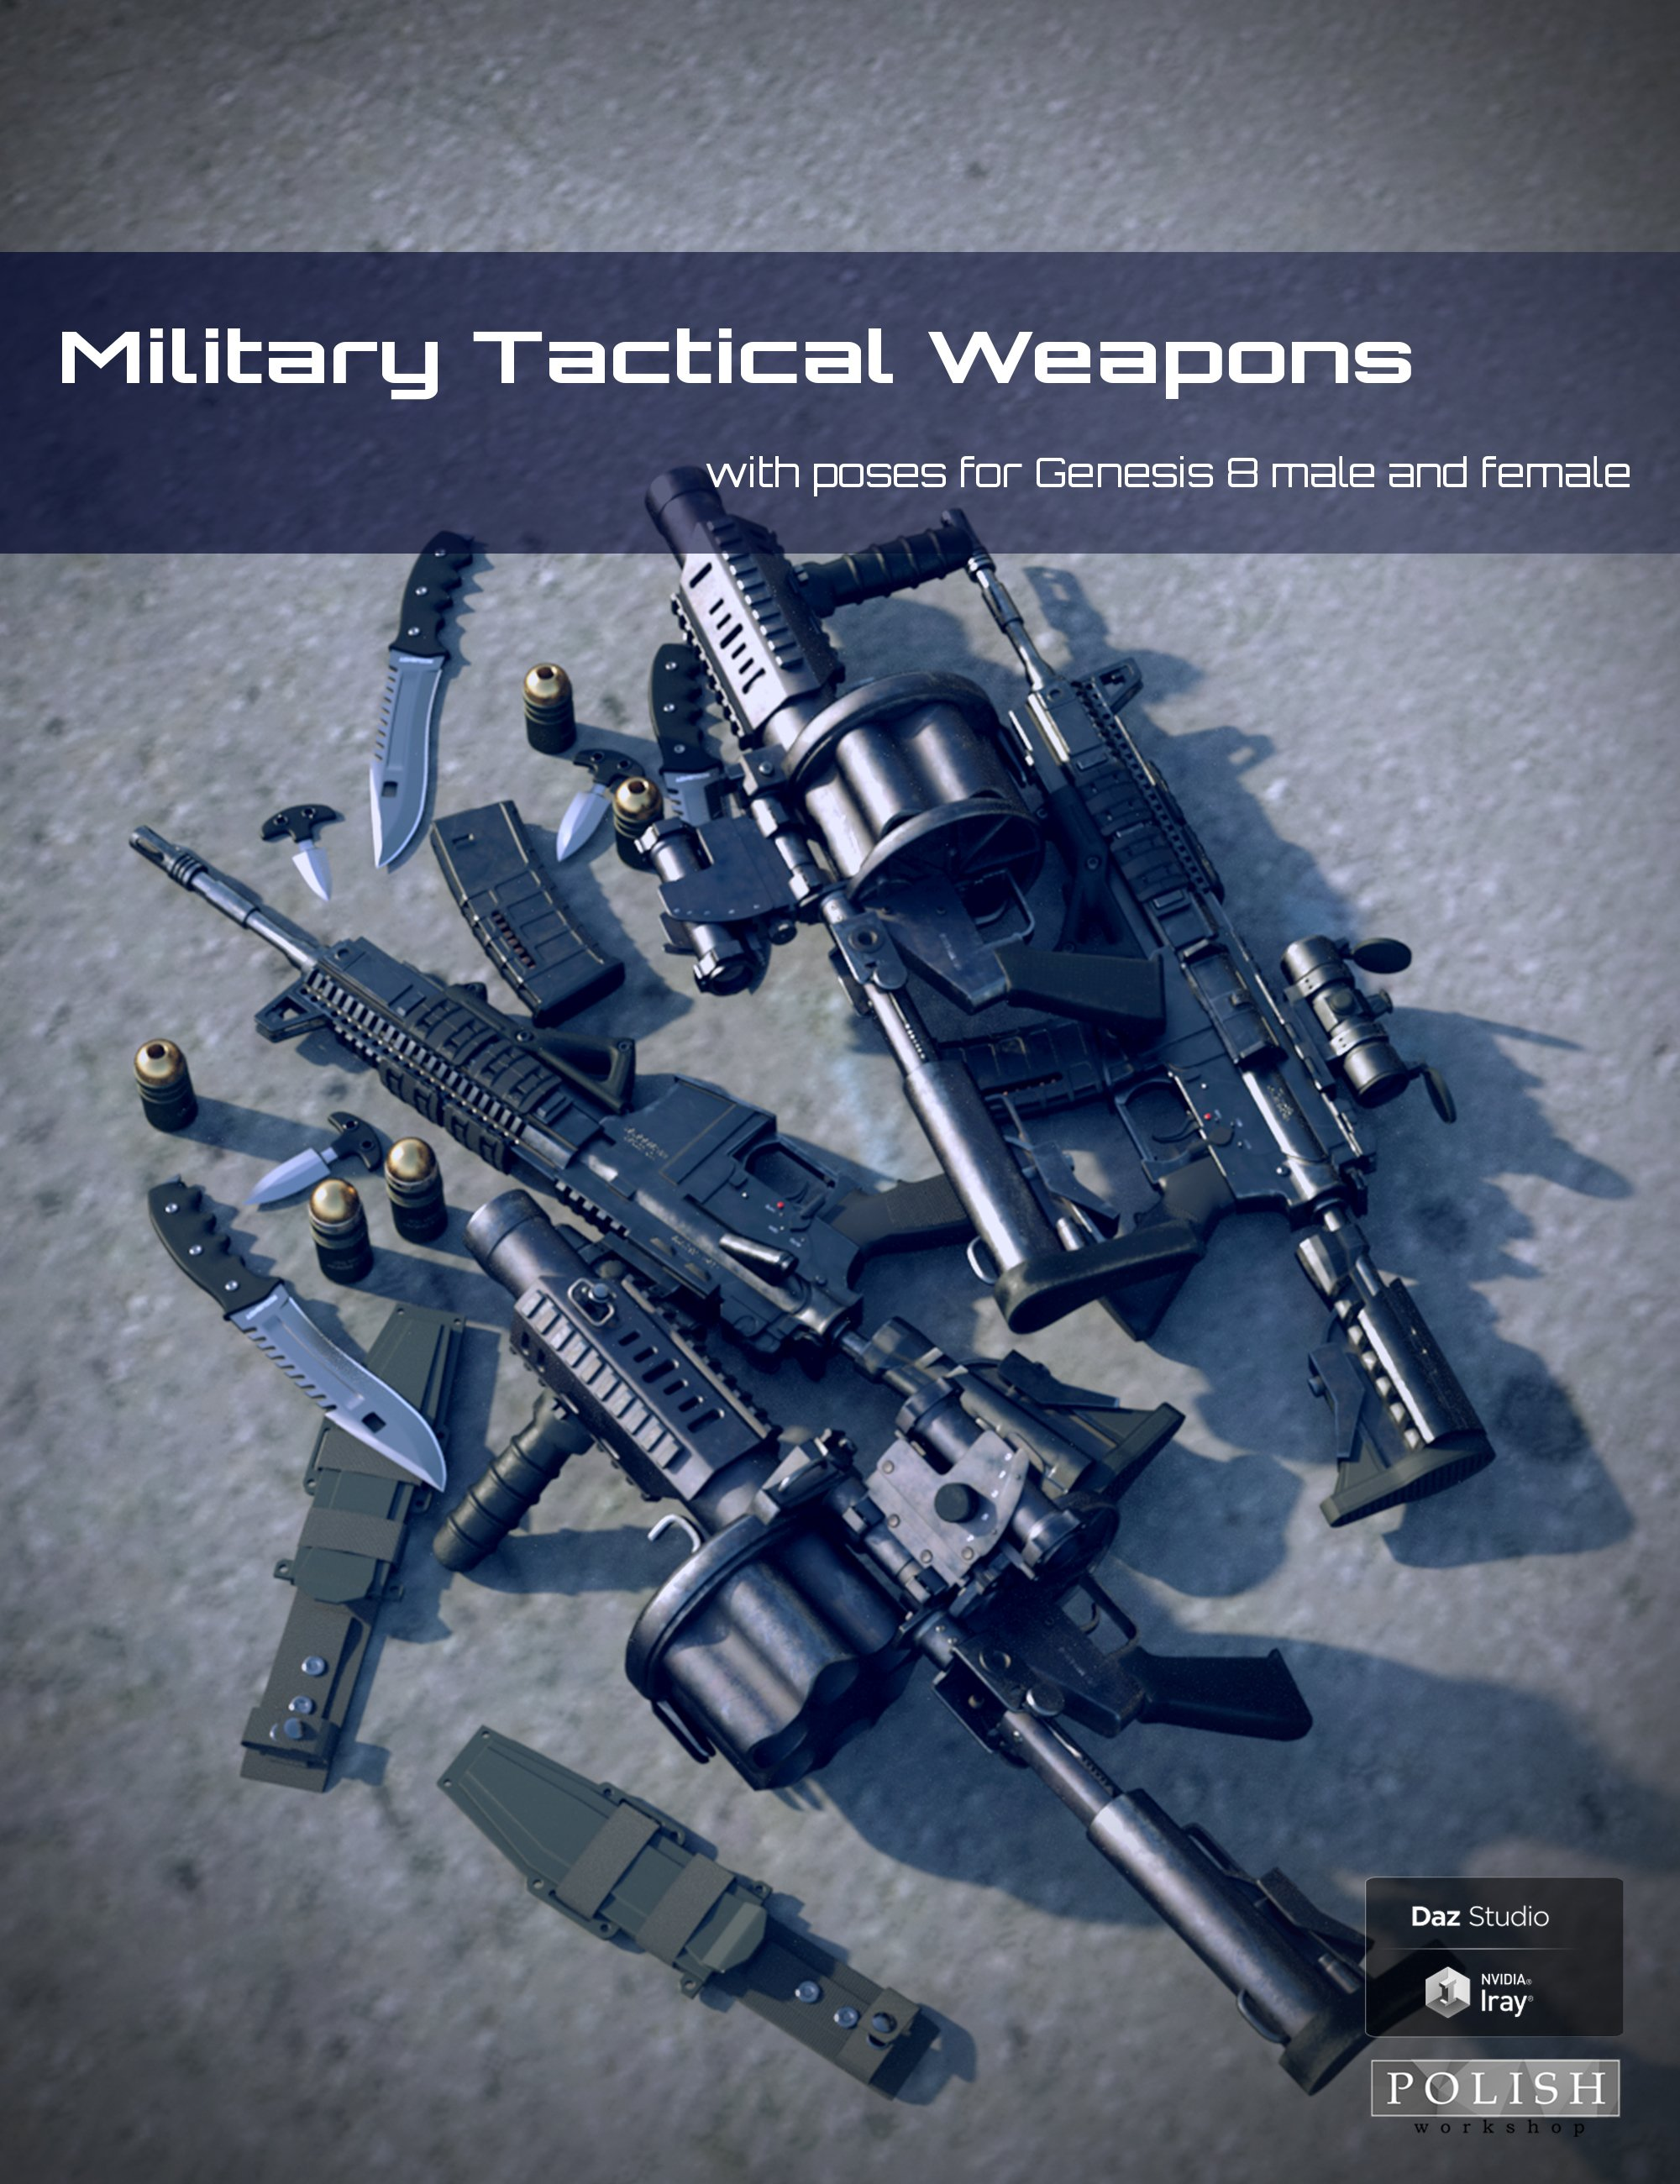 Military Tactical Weapons and Poses for Genesis 8 by: Polish, 3D Models by Daz 3D